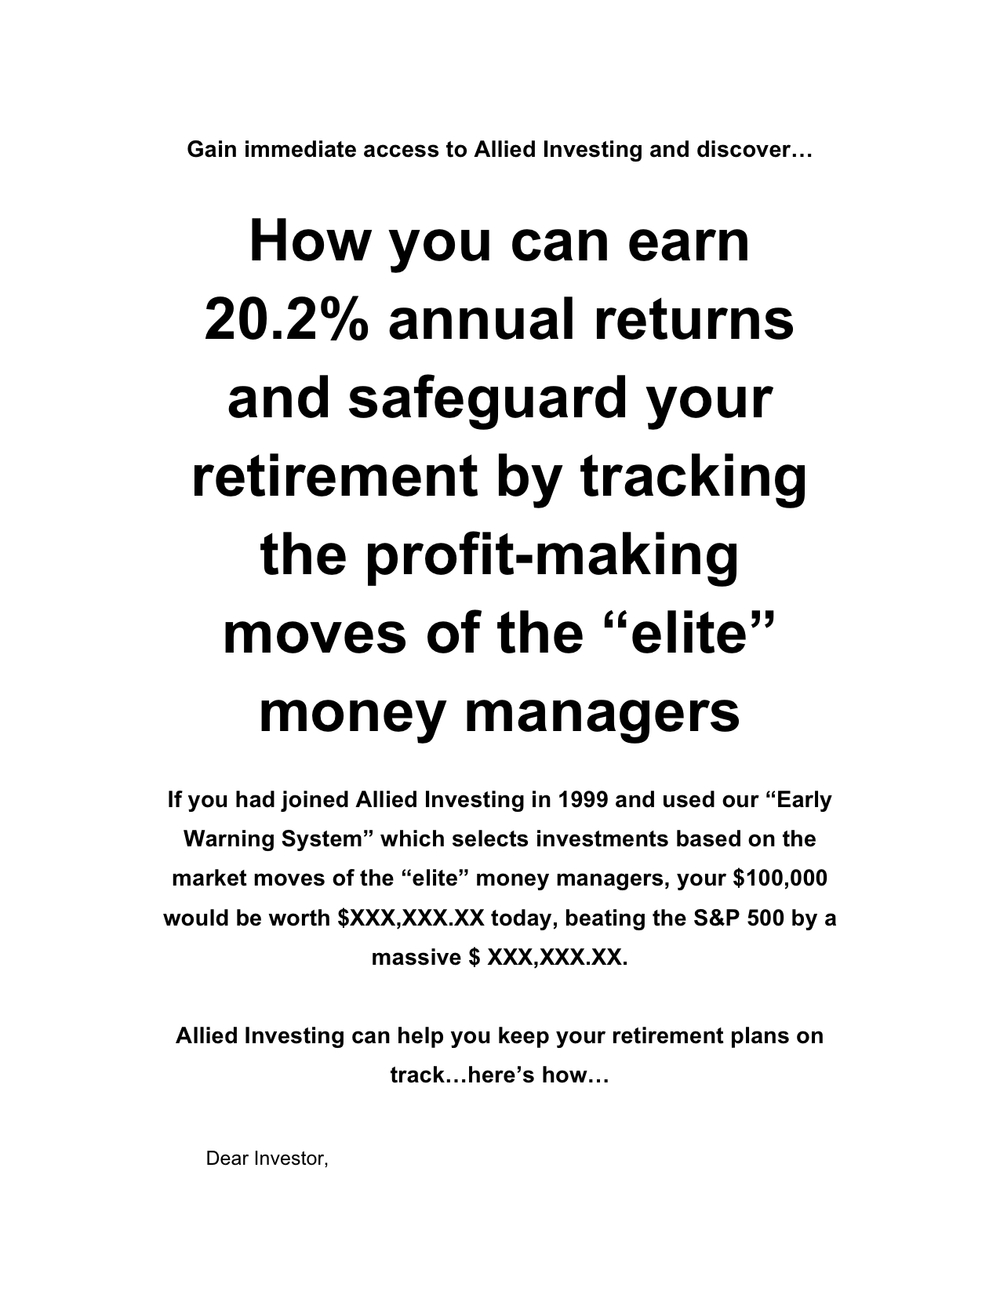 Allied Investing